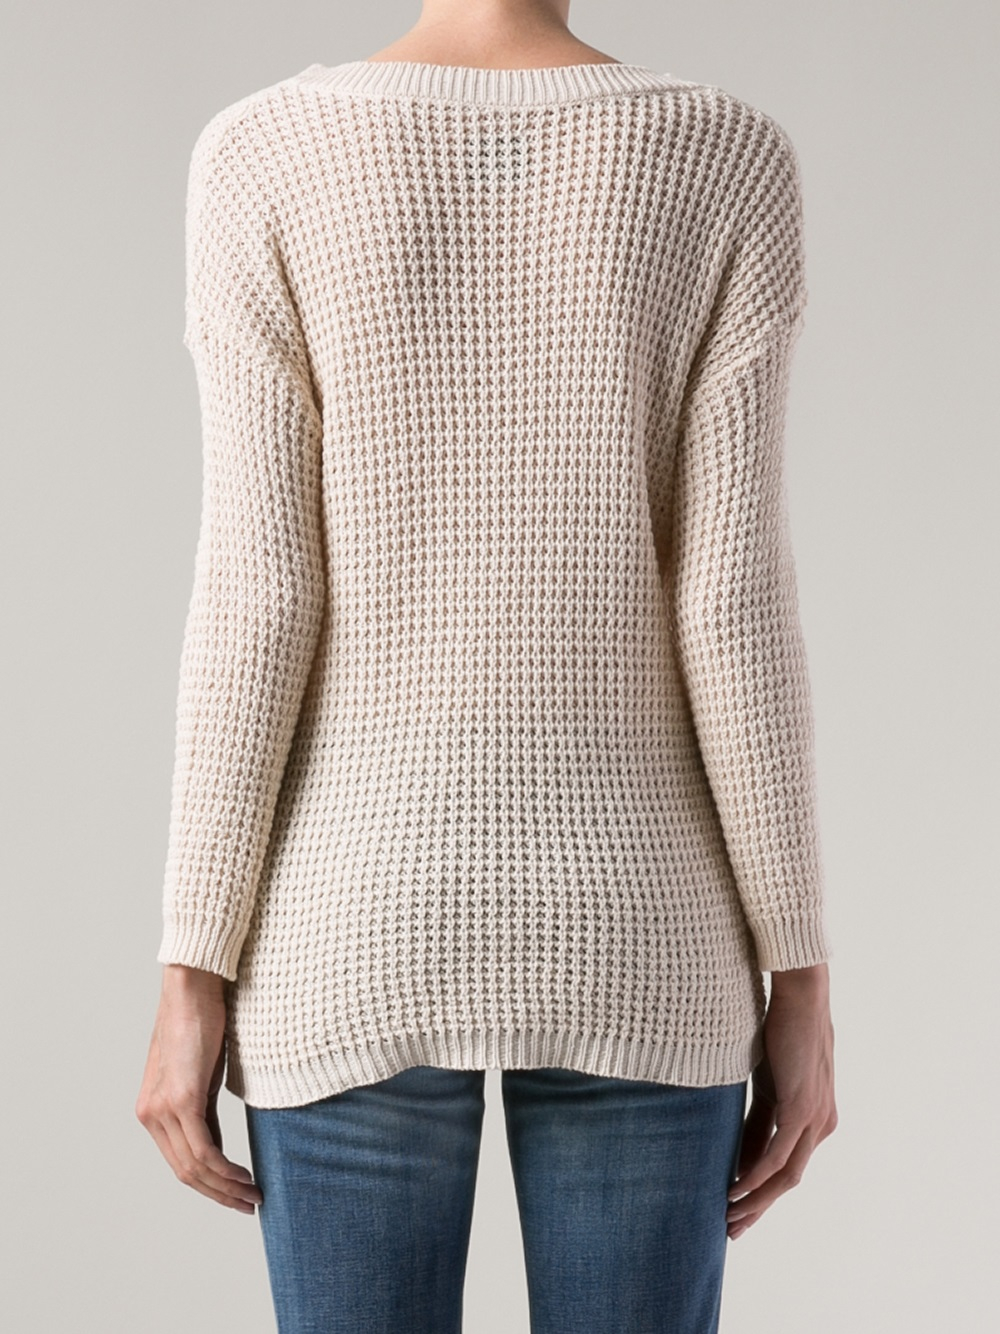 Anine bing Open Knit Sweater in Natural | Lyst